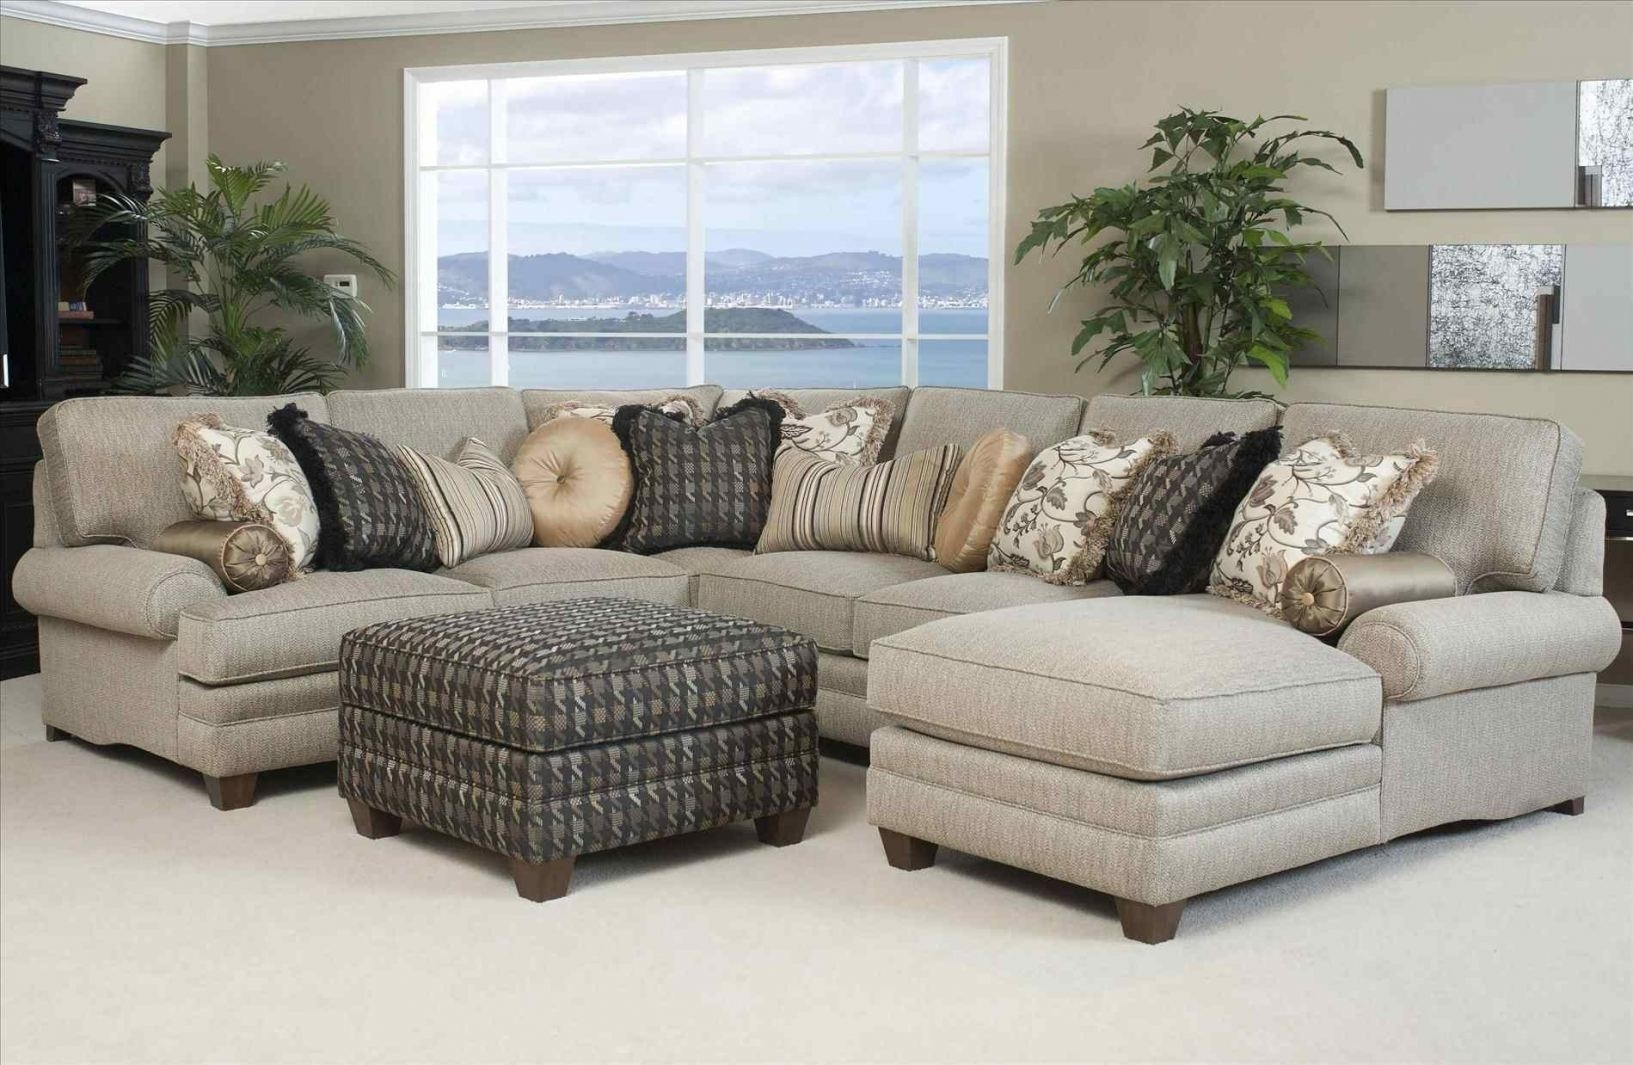 Superb Leather Sofa Portland 8 Couch Deals Sofas Oregon With Regard To